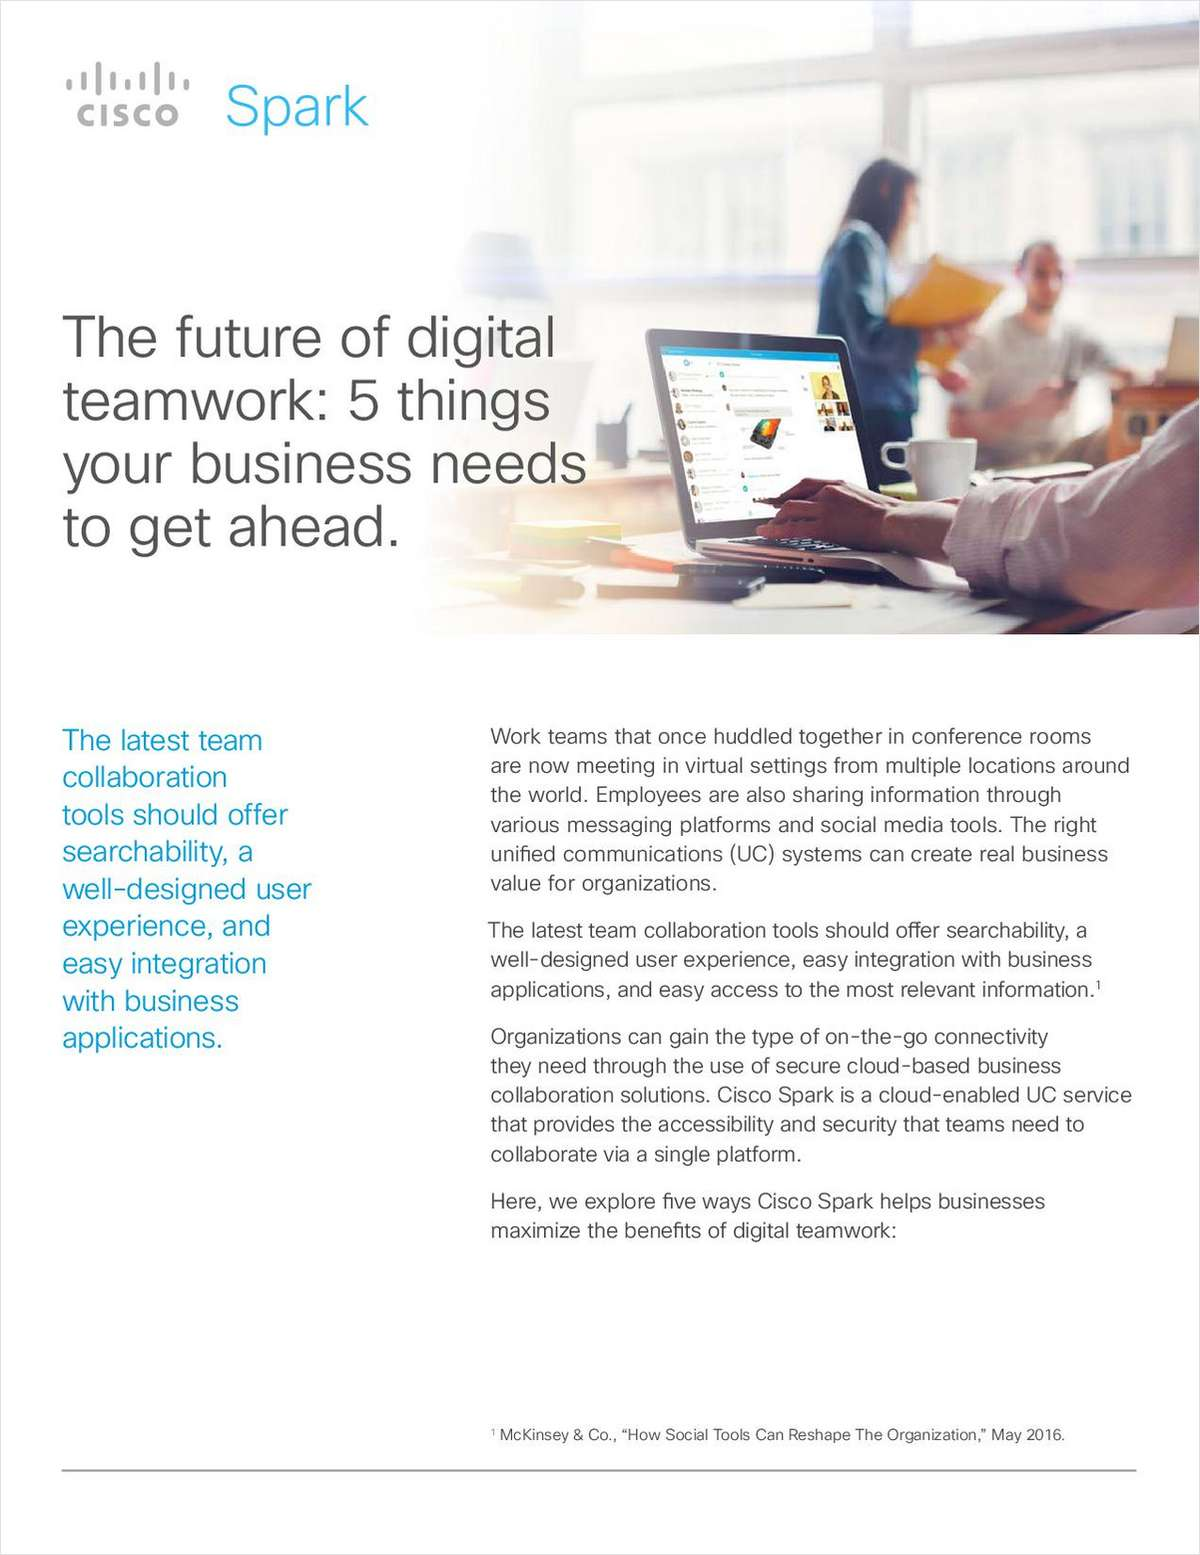 The Future of Digital Teamwork: 5 Things Your Business Needs To Get Ahead